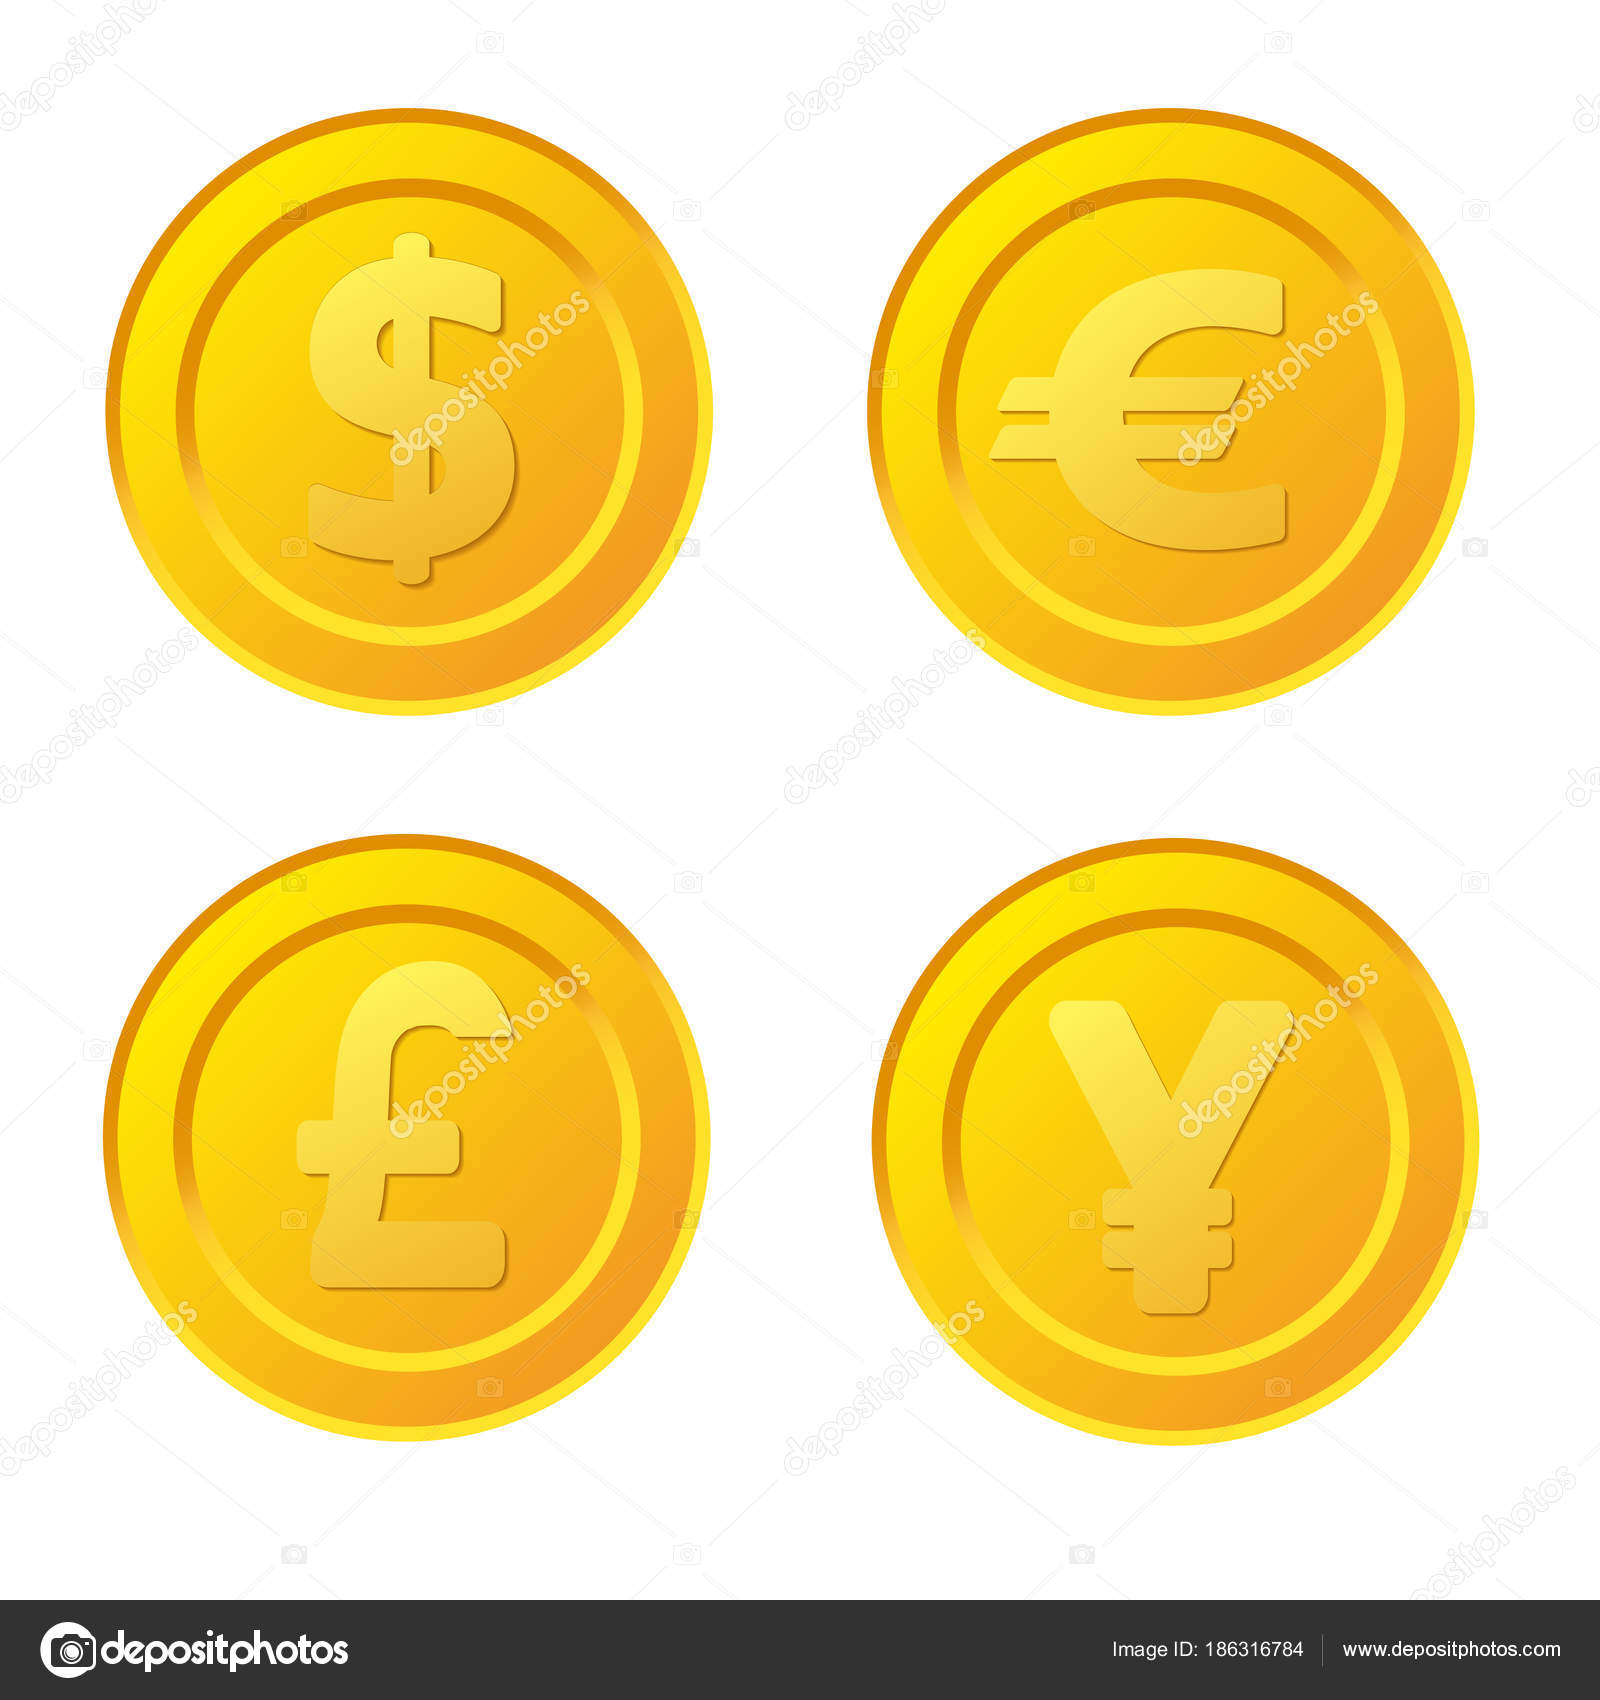 Set of stylized golden coin with currency symbols dollar euro set of stylized golden coin with currency symbols dollar euro stock vector biocorpaavc Images